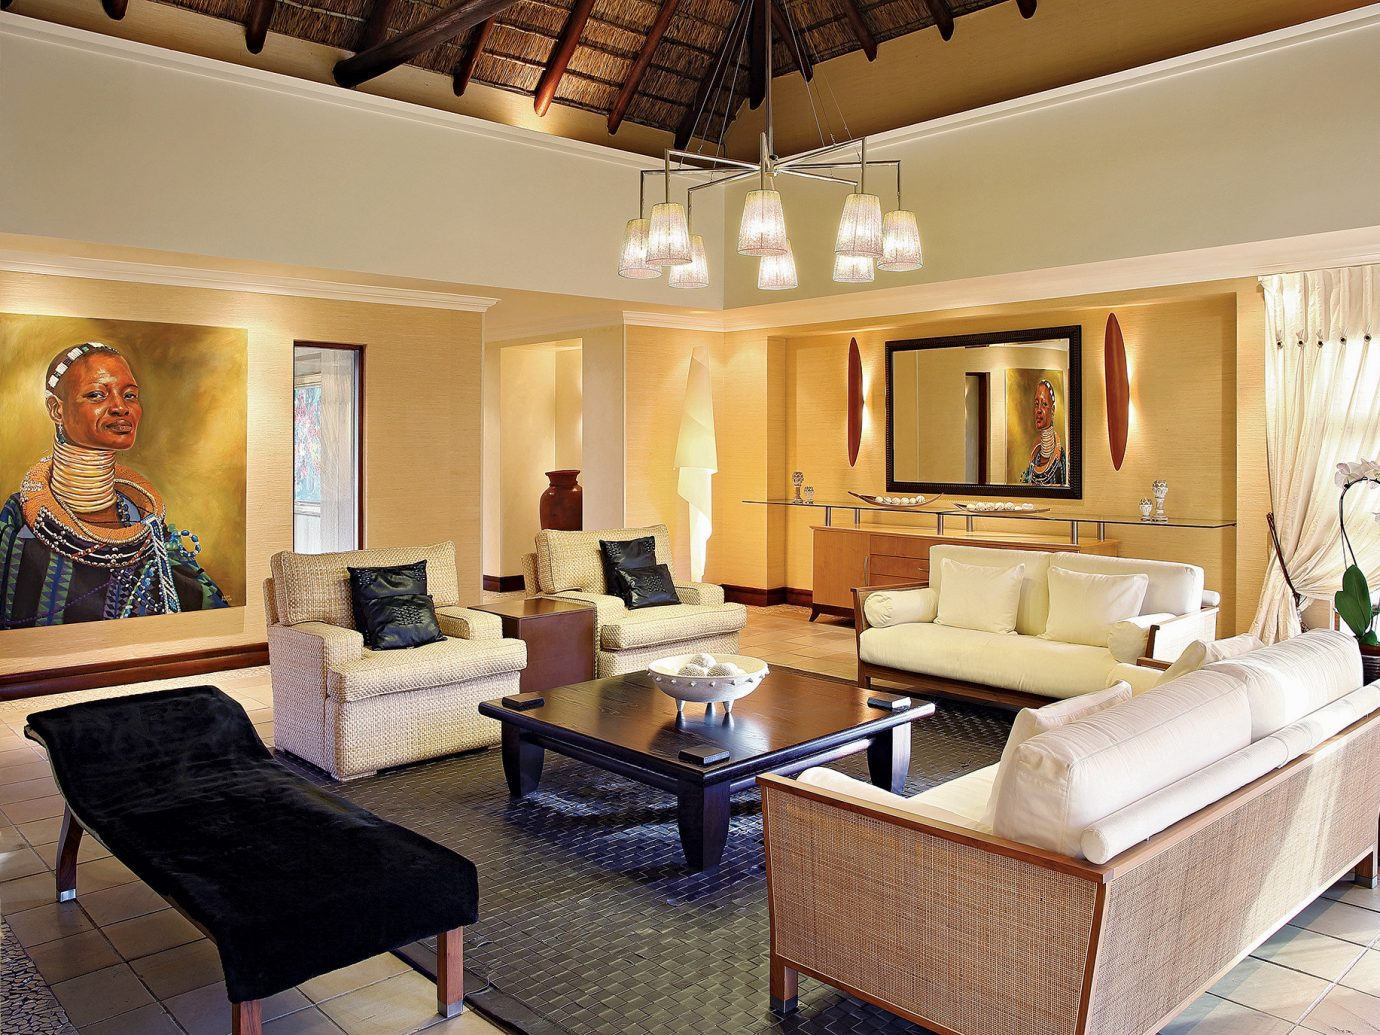 Hotels Safari indoor floor wall ceiling Living room living room property furniture estate Suite home interior design condominium Lobby real estate Villa Design dining room mansion recreation room cottage apartment Bedroom